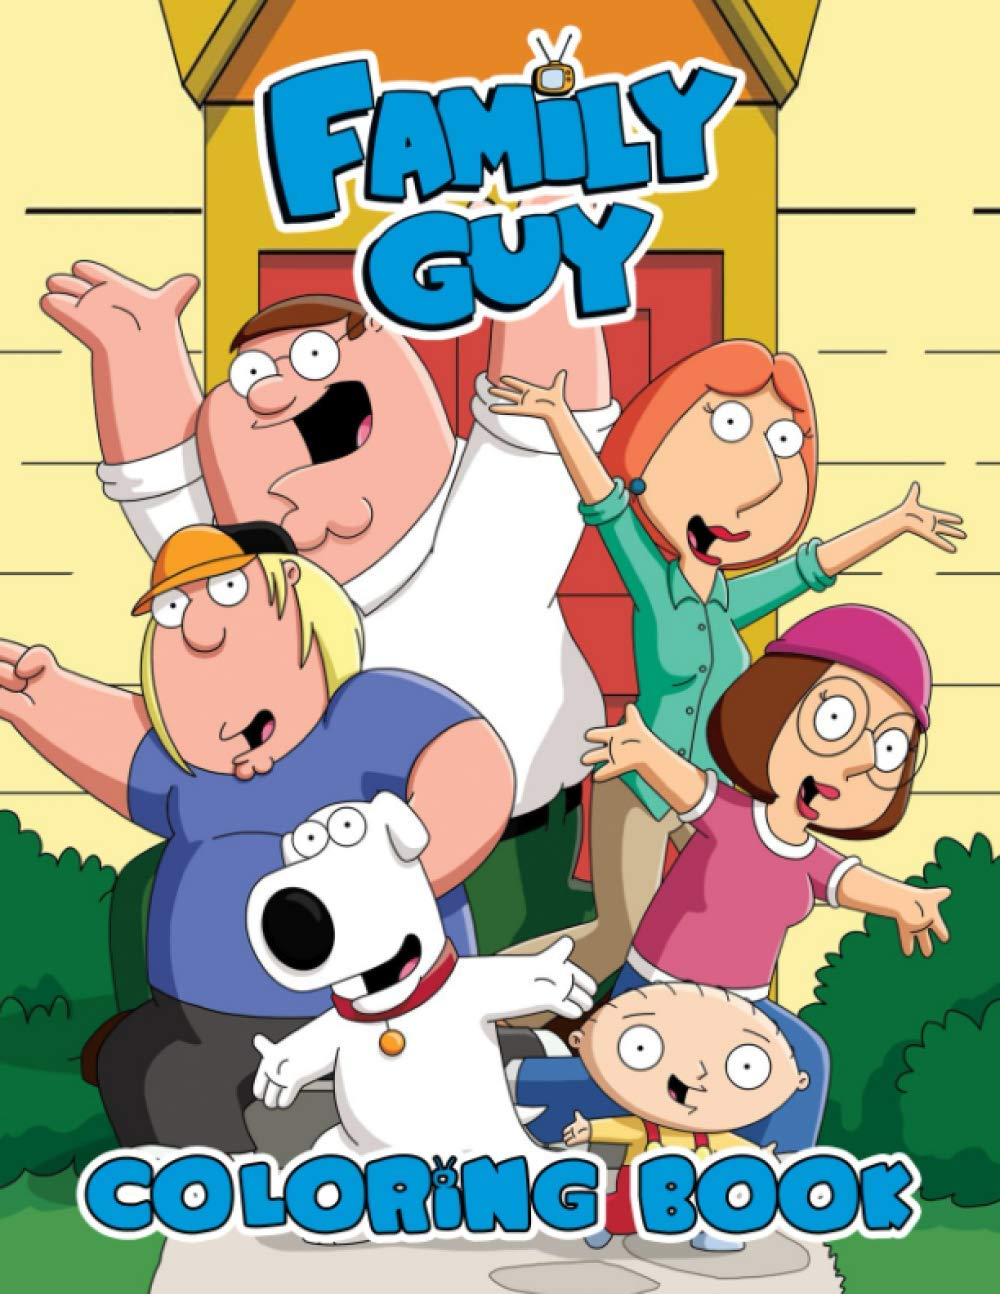 Family Guy Coloring Book Easy Coloring Book For Fans Of Family Guy With Easy Coloring Pages In High Quality Perfect Way Encouraging Creativity And Build Hand Eye Coordination Lewis Steve 9798686397491 Amazon Com Books